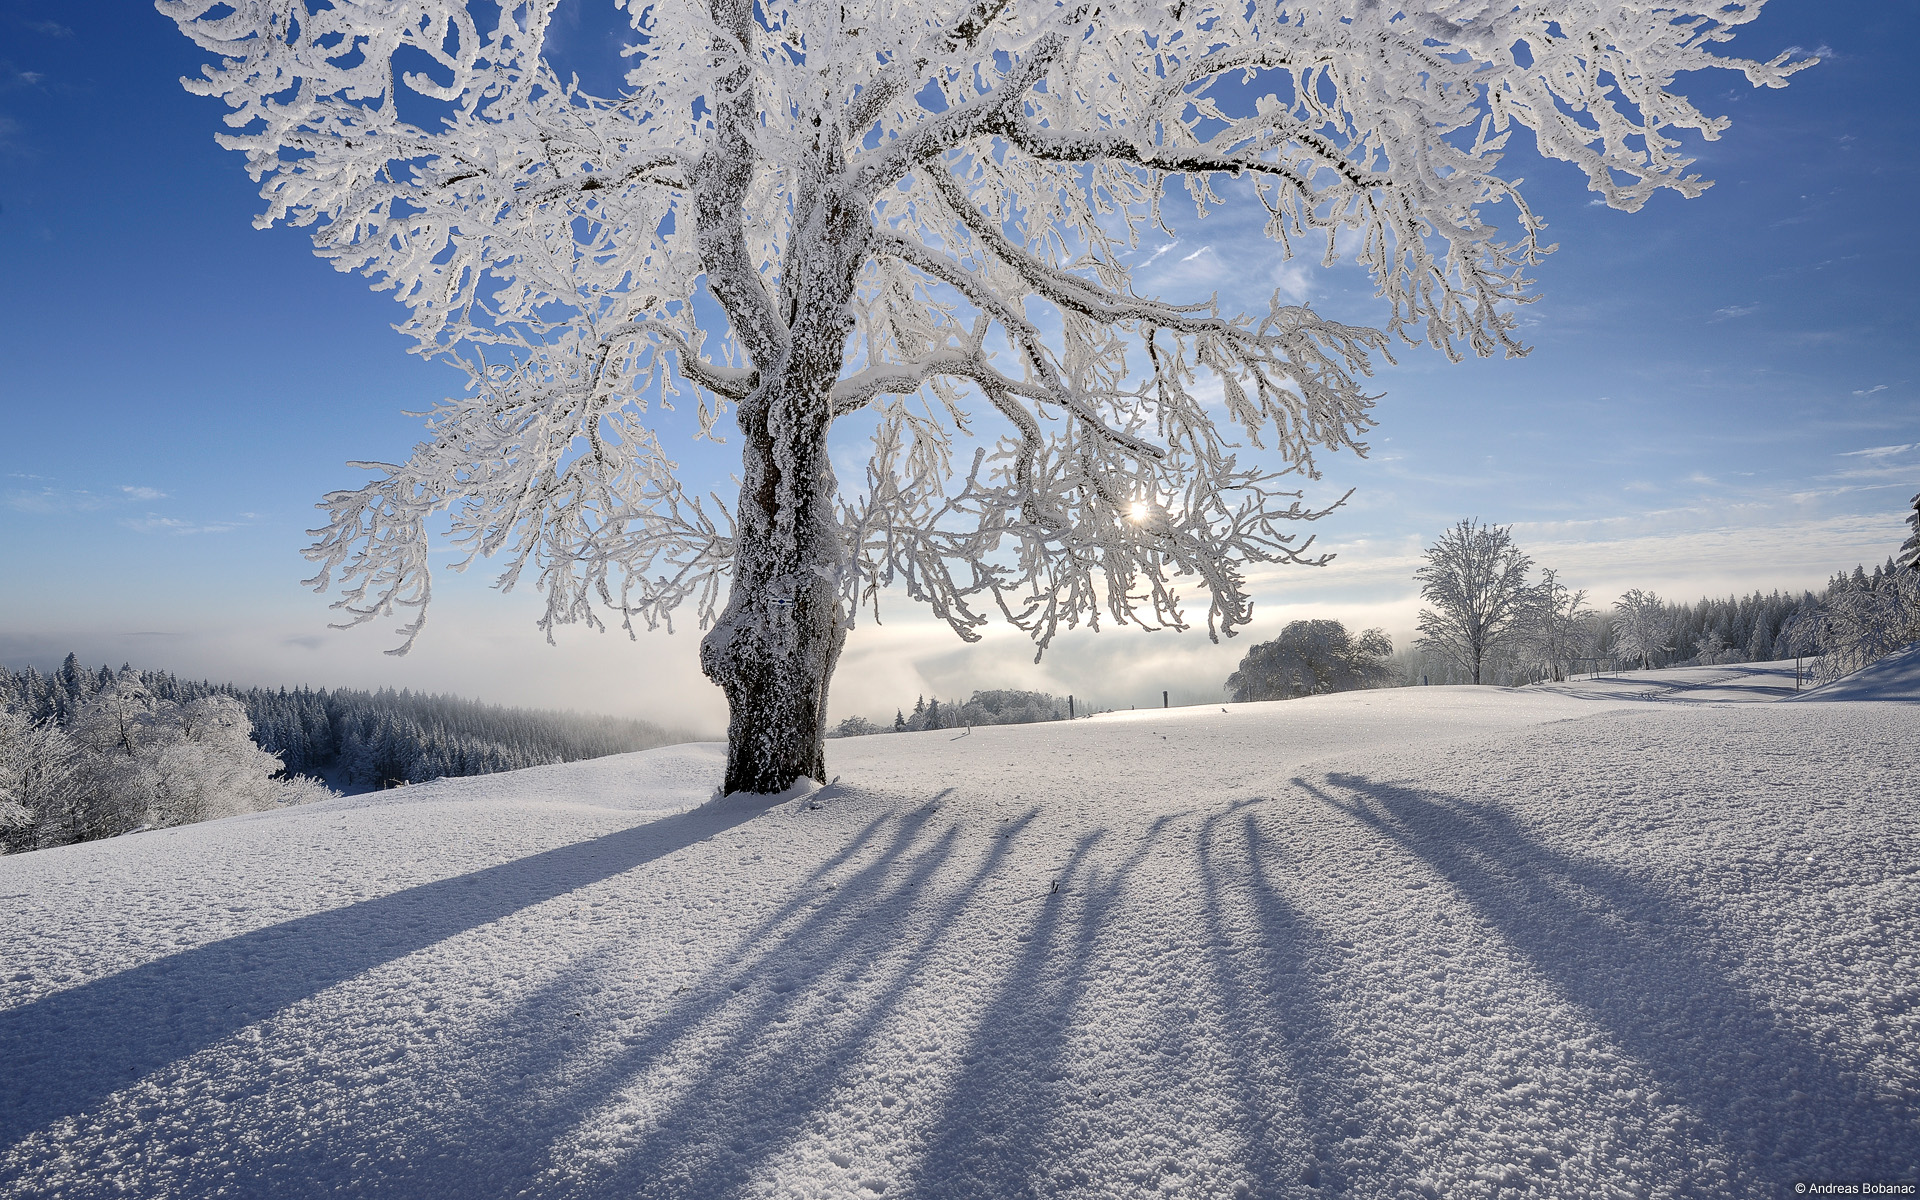 Winter Wallpaper For My Desktop Winter and Christmas desktop backgrounds HQ Wallpapers HQ